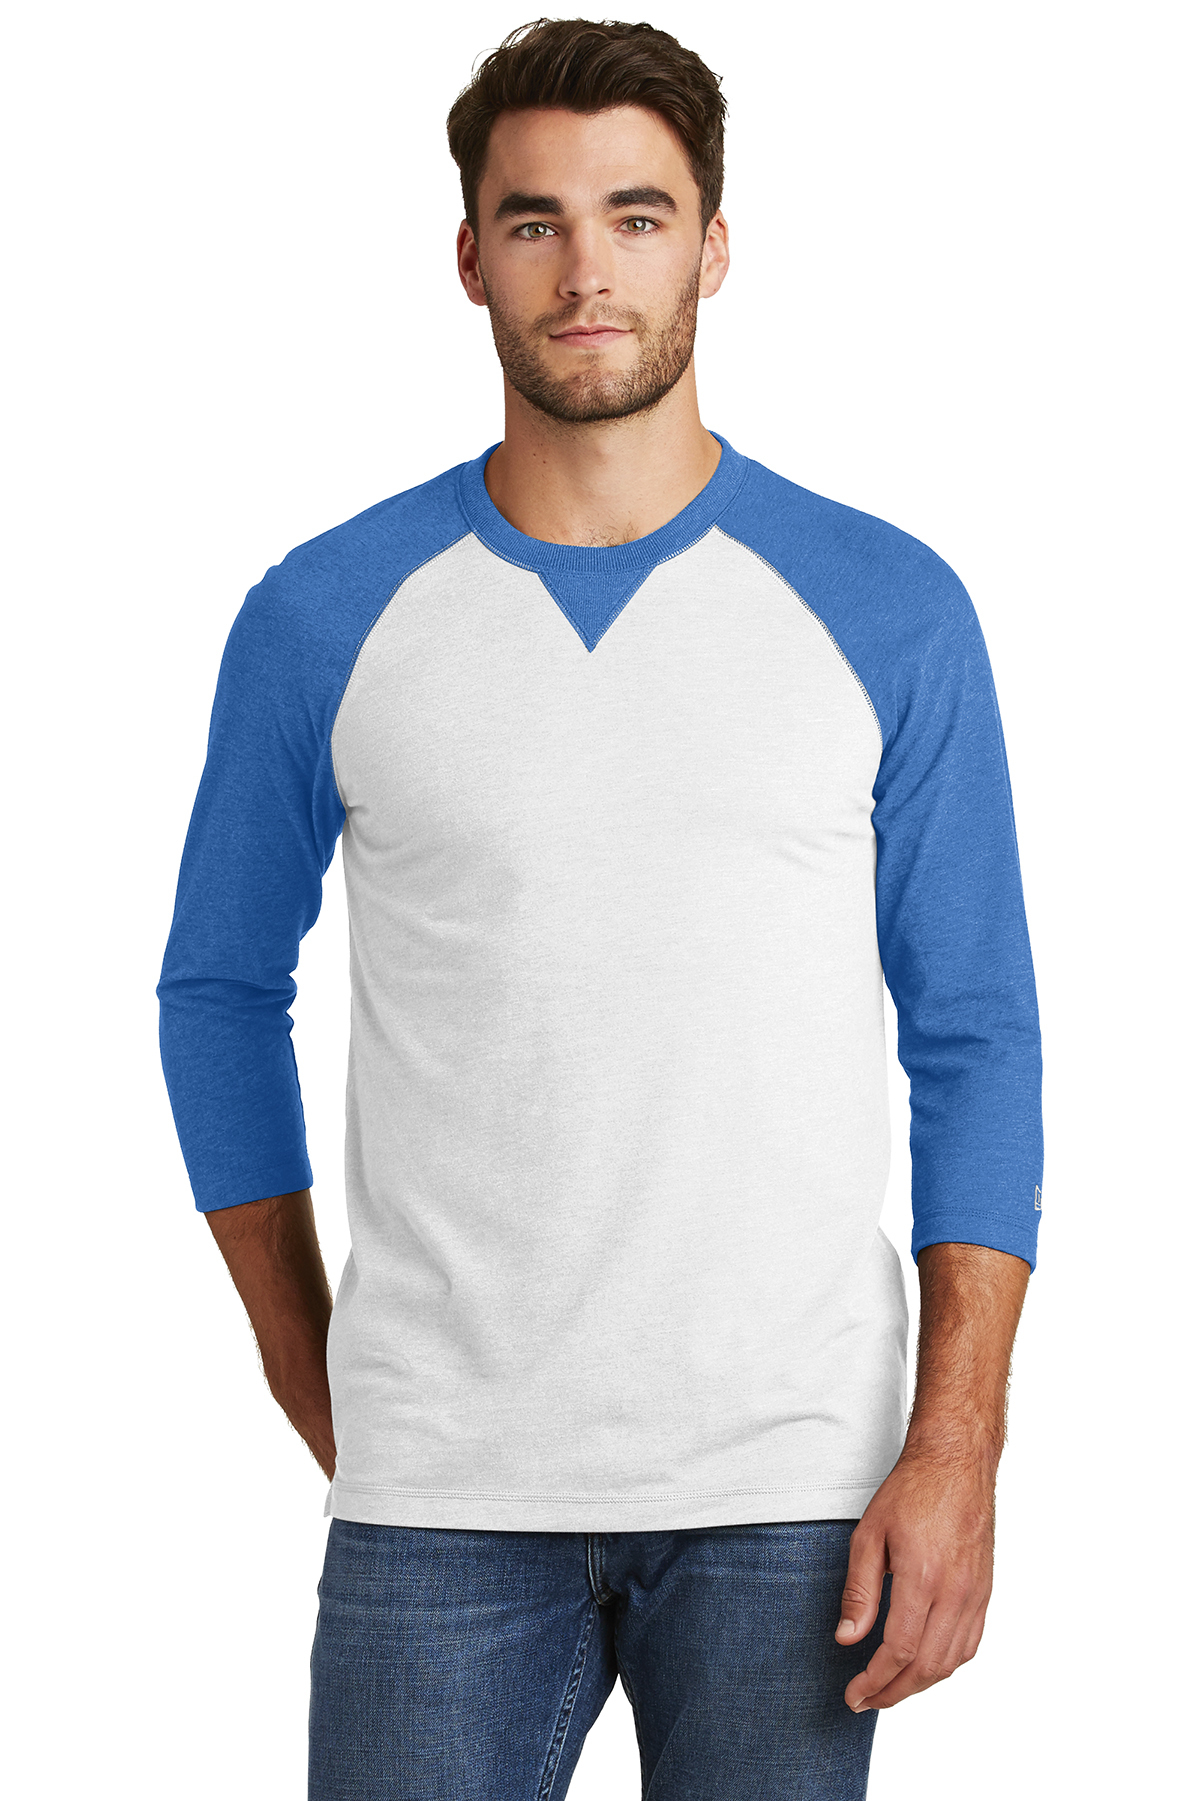 New Era NEA121 - Men's Sueded Cotton 3/4 Sleeve Baseball Raglan Tee